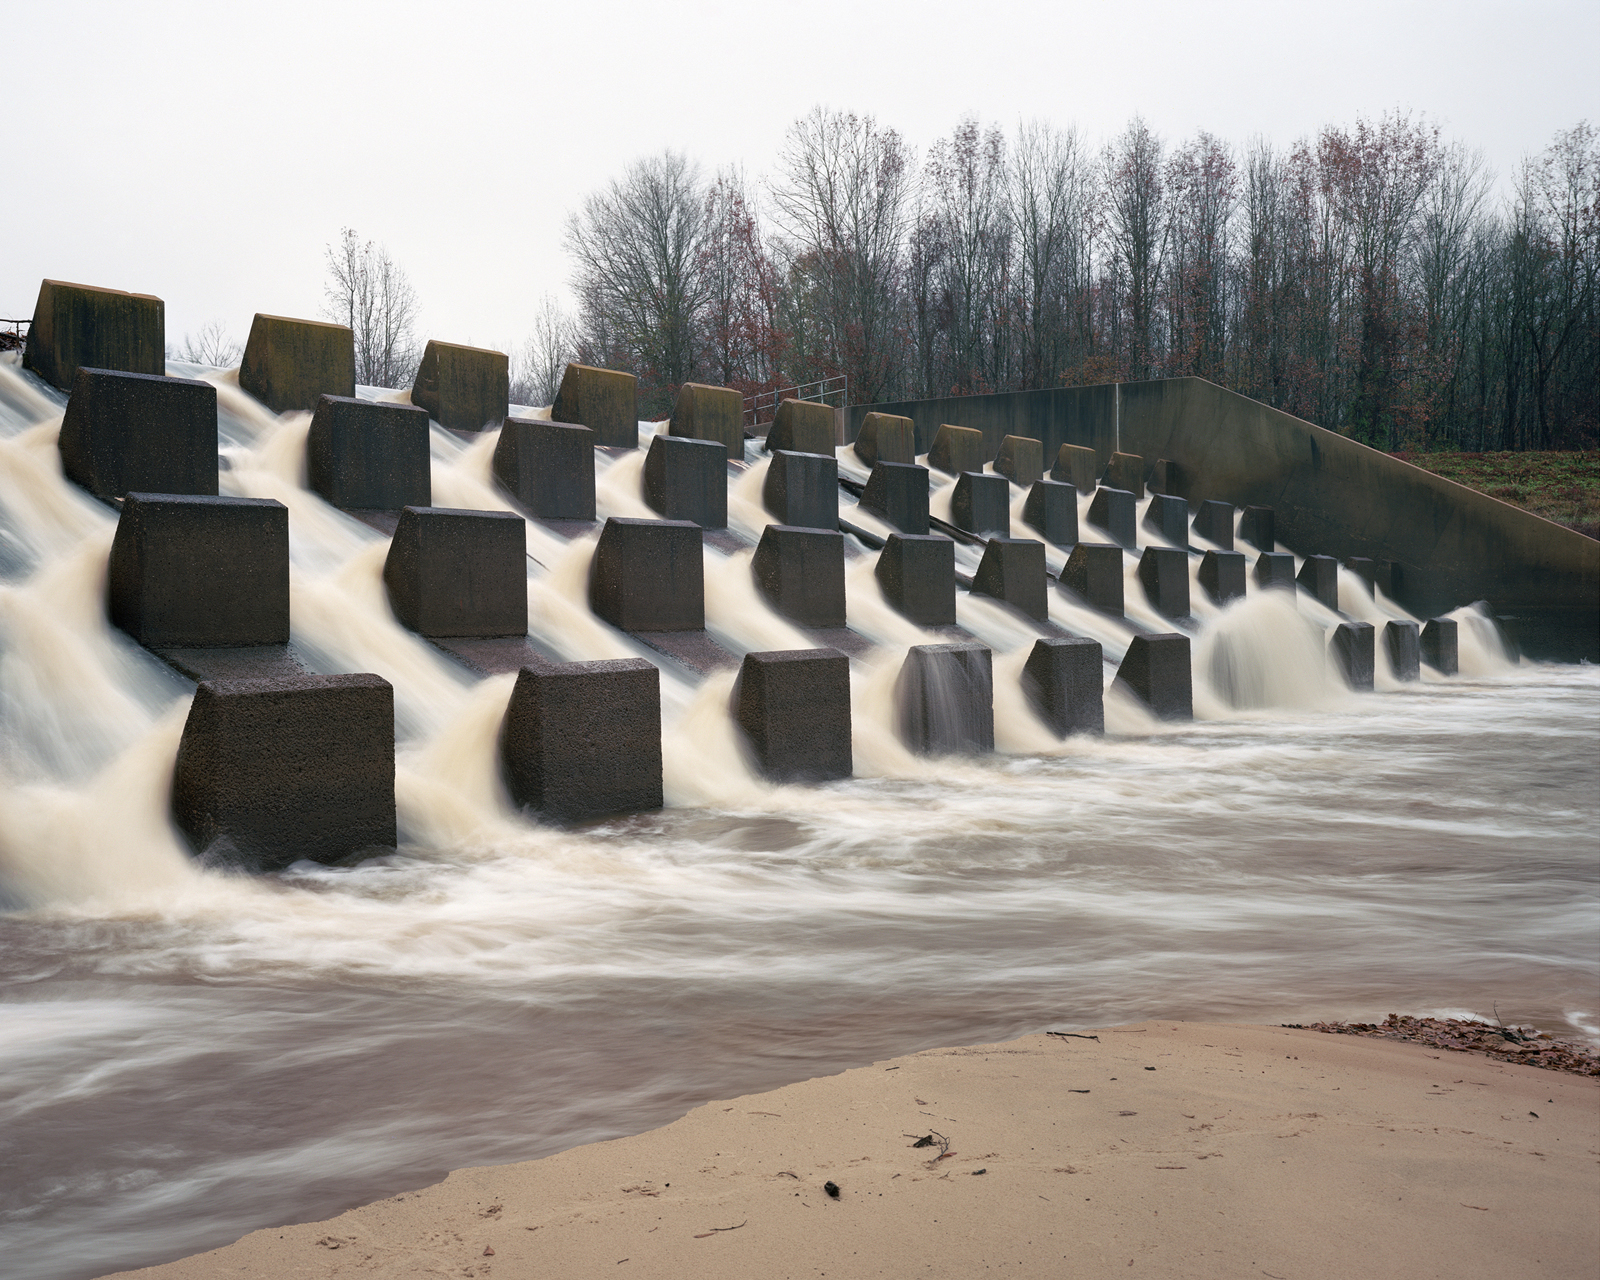 Erosion Control at the Mouth of Yellow Creek, Tennessee – Tombigbee Waterway, Iuka, Mississippi  2013